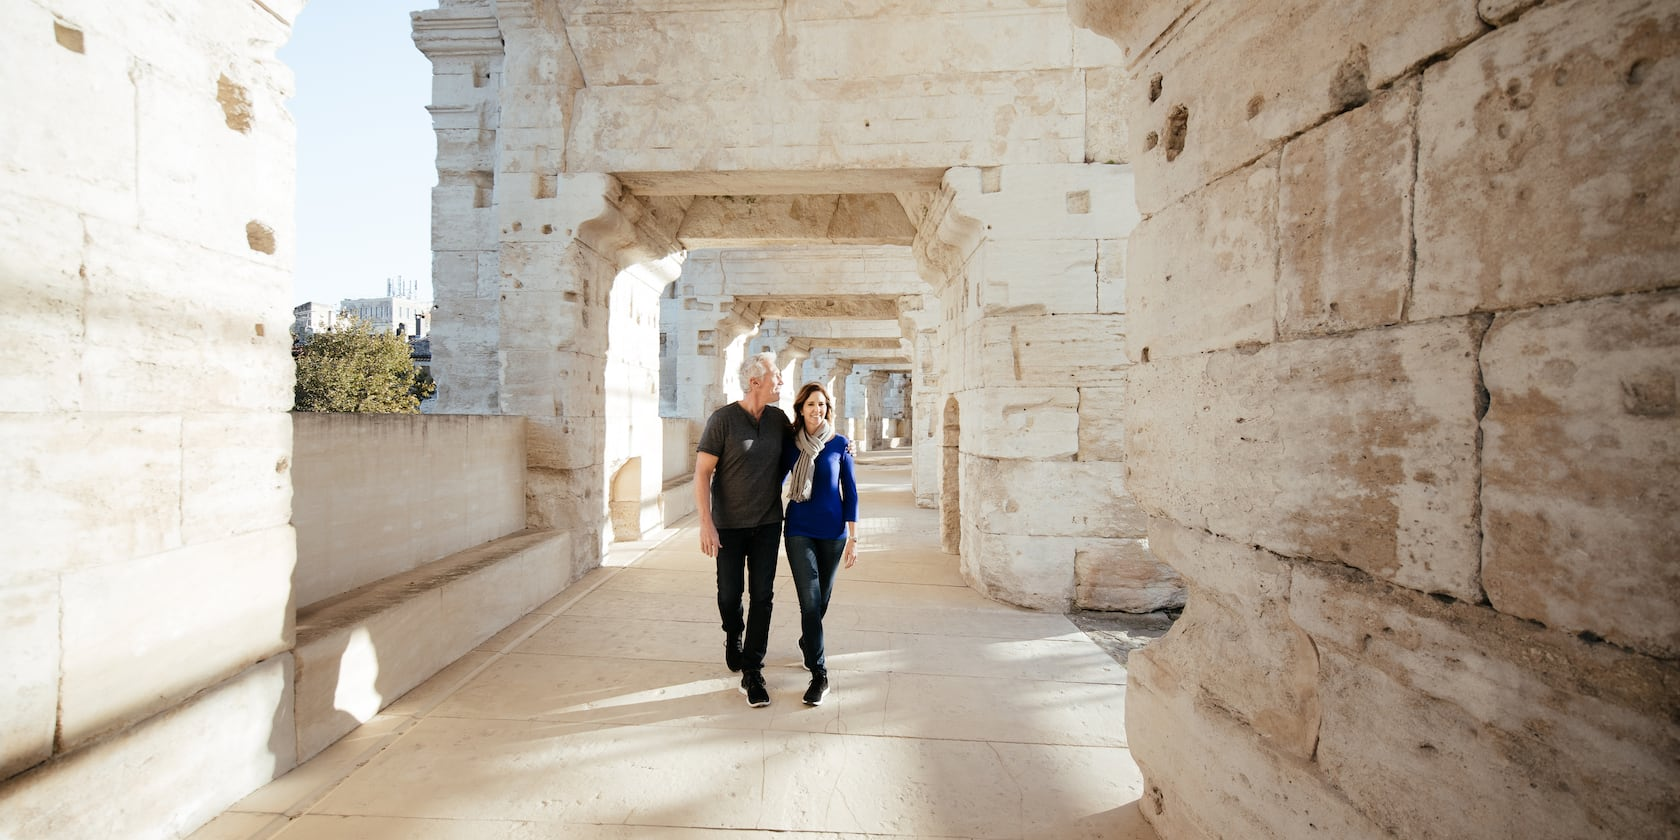 A man and woman walk through a hallway in a roman ruin in Arles, France